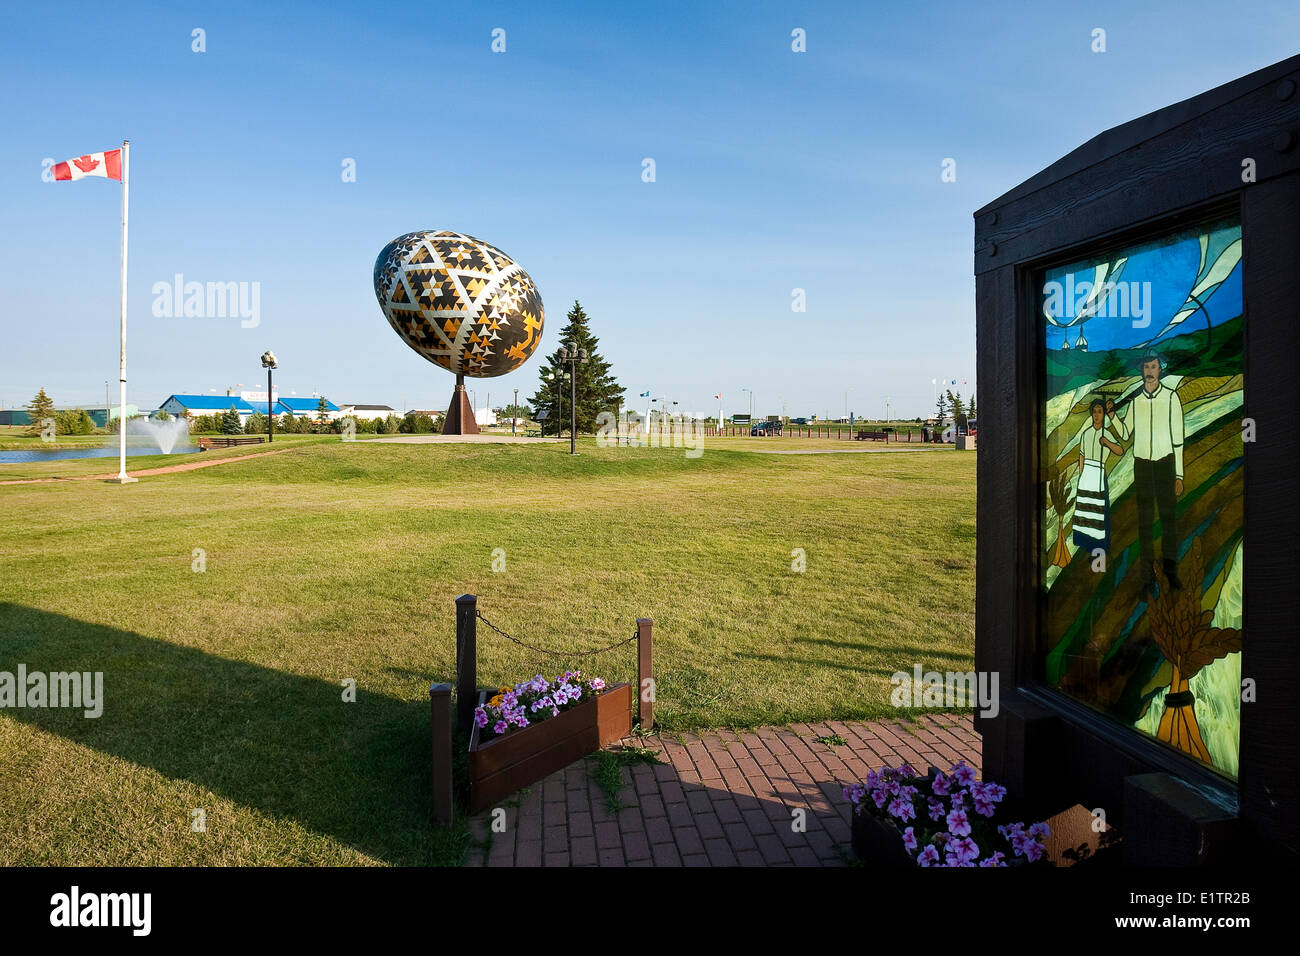 Worlds largest Pysanka and Ukranian Pioneers stained glass window in Vegreville, Alberta, Canada - Stock Image